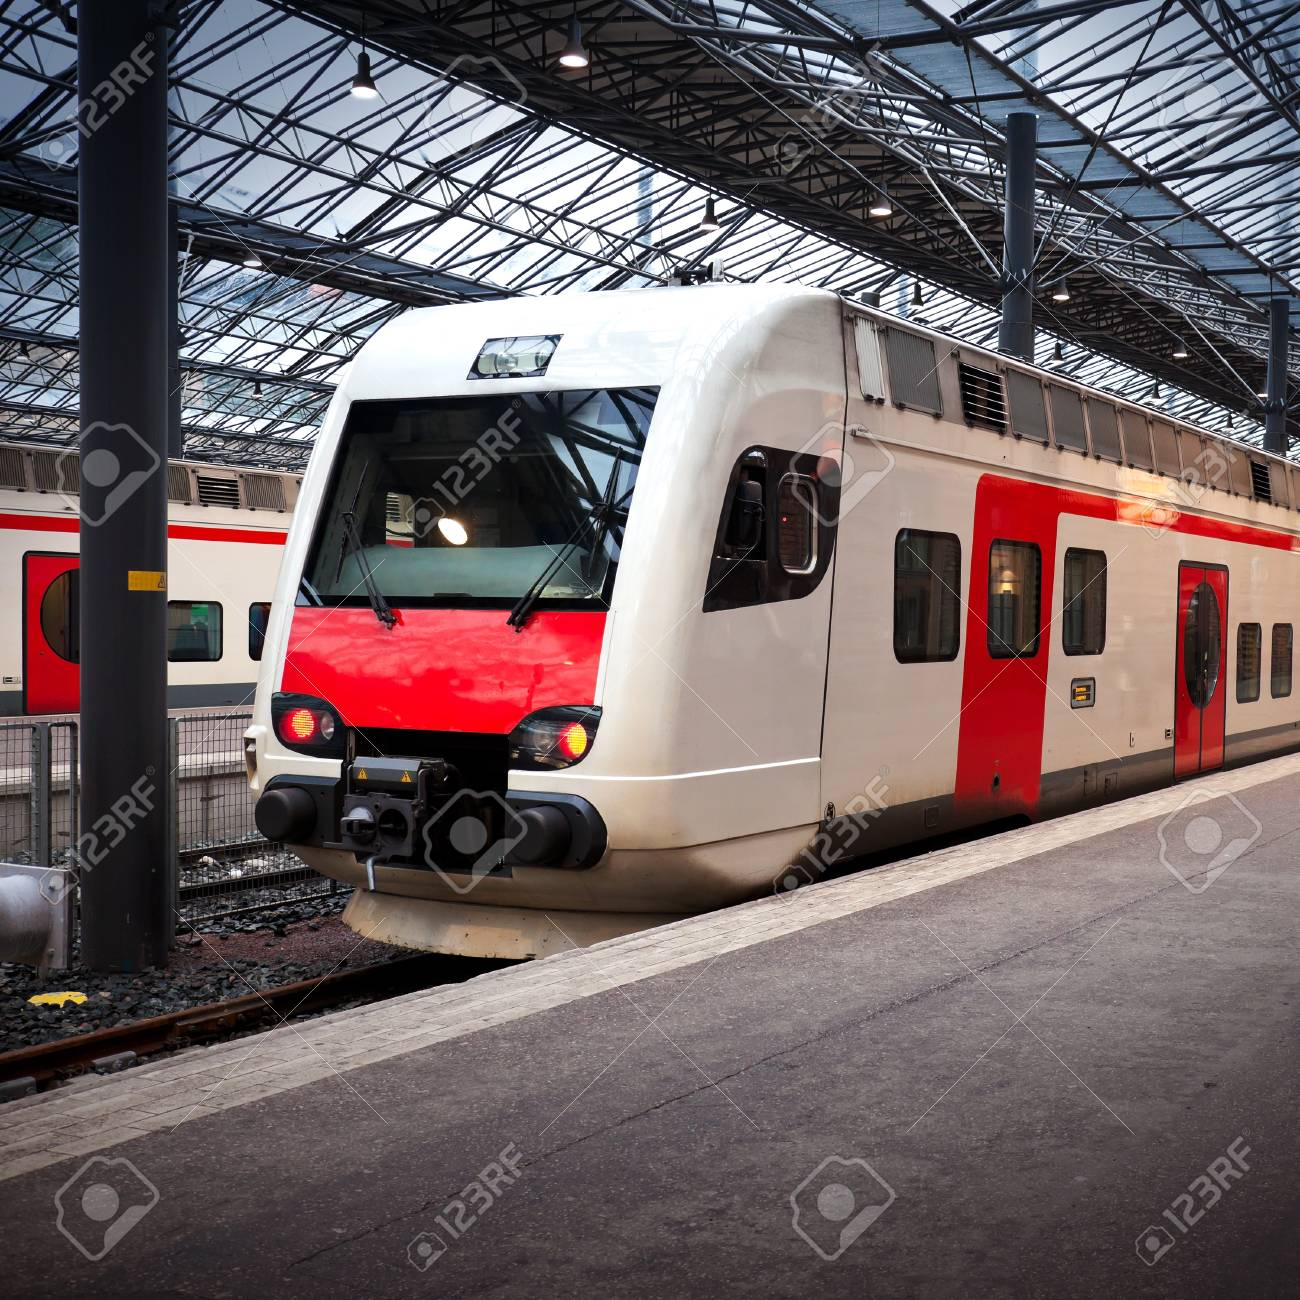 Perspective view of the modern electric express train on a platform Stock Photo - 15670156